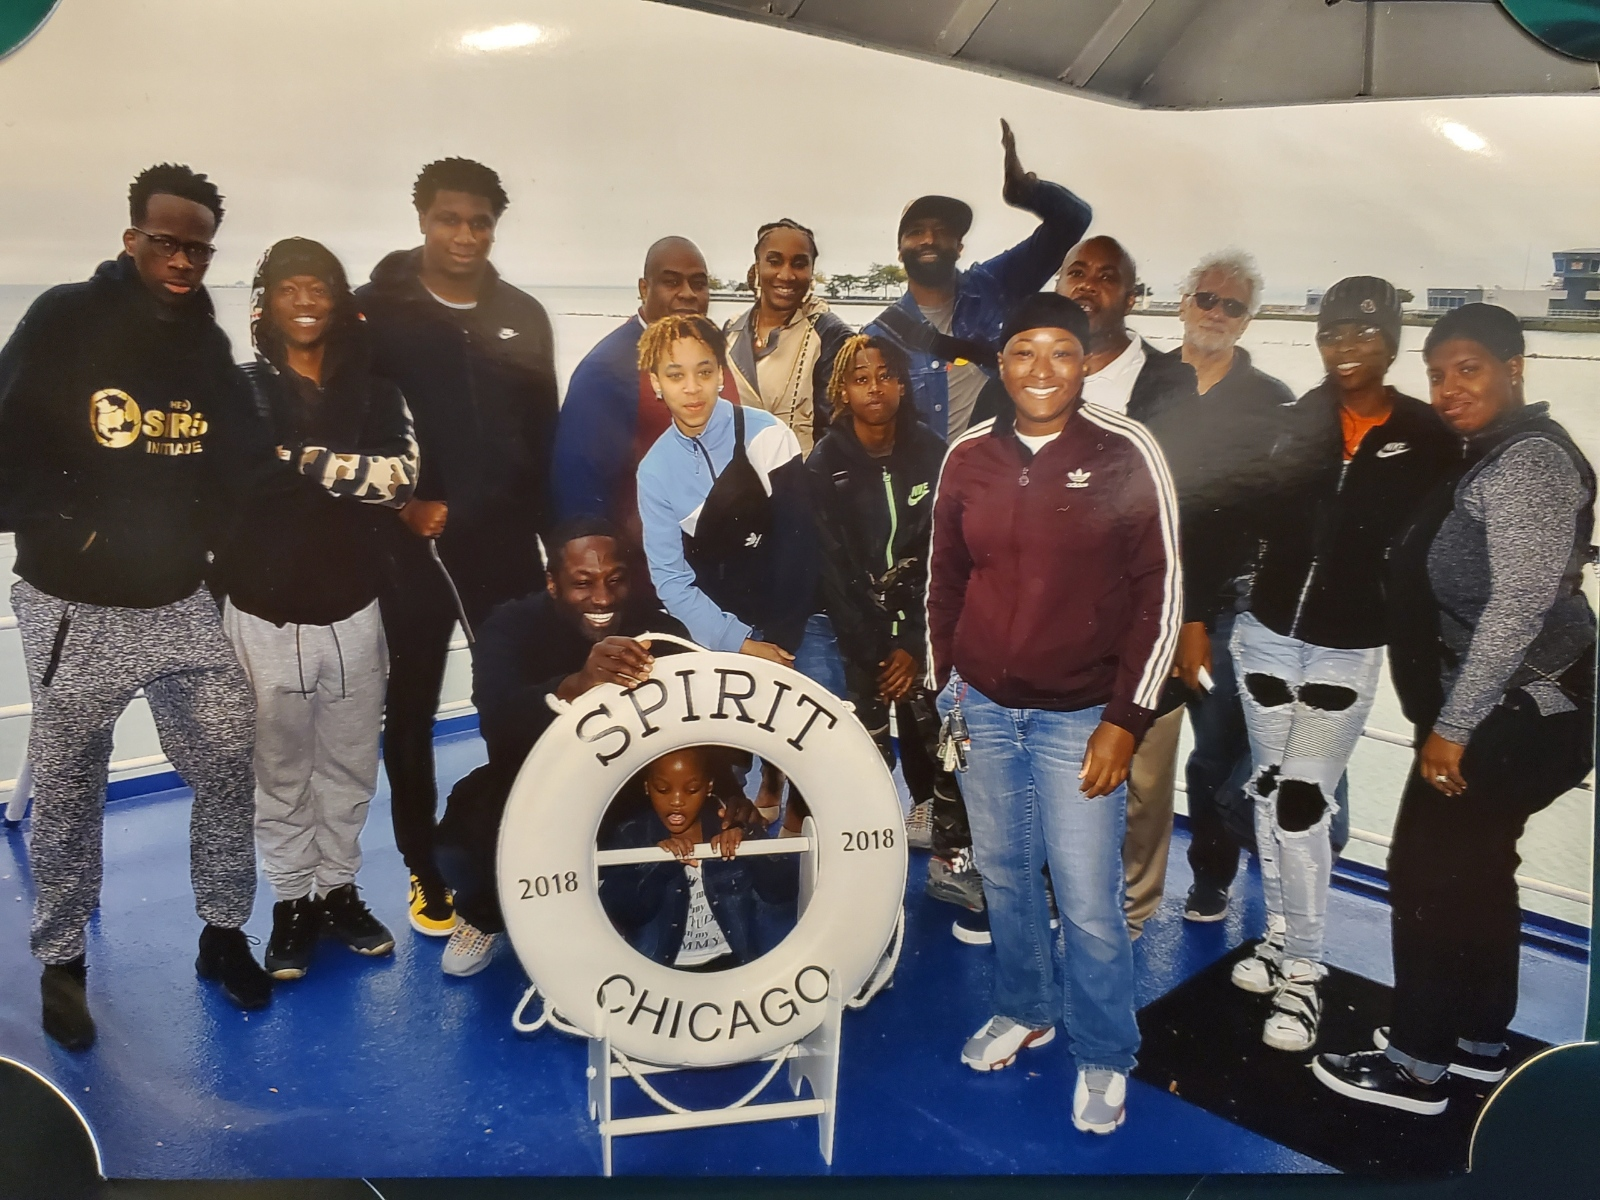 Emoni Atomah, 23, (second from left) last summer with other members of the Strong Futures program as well as coaches and program staff.